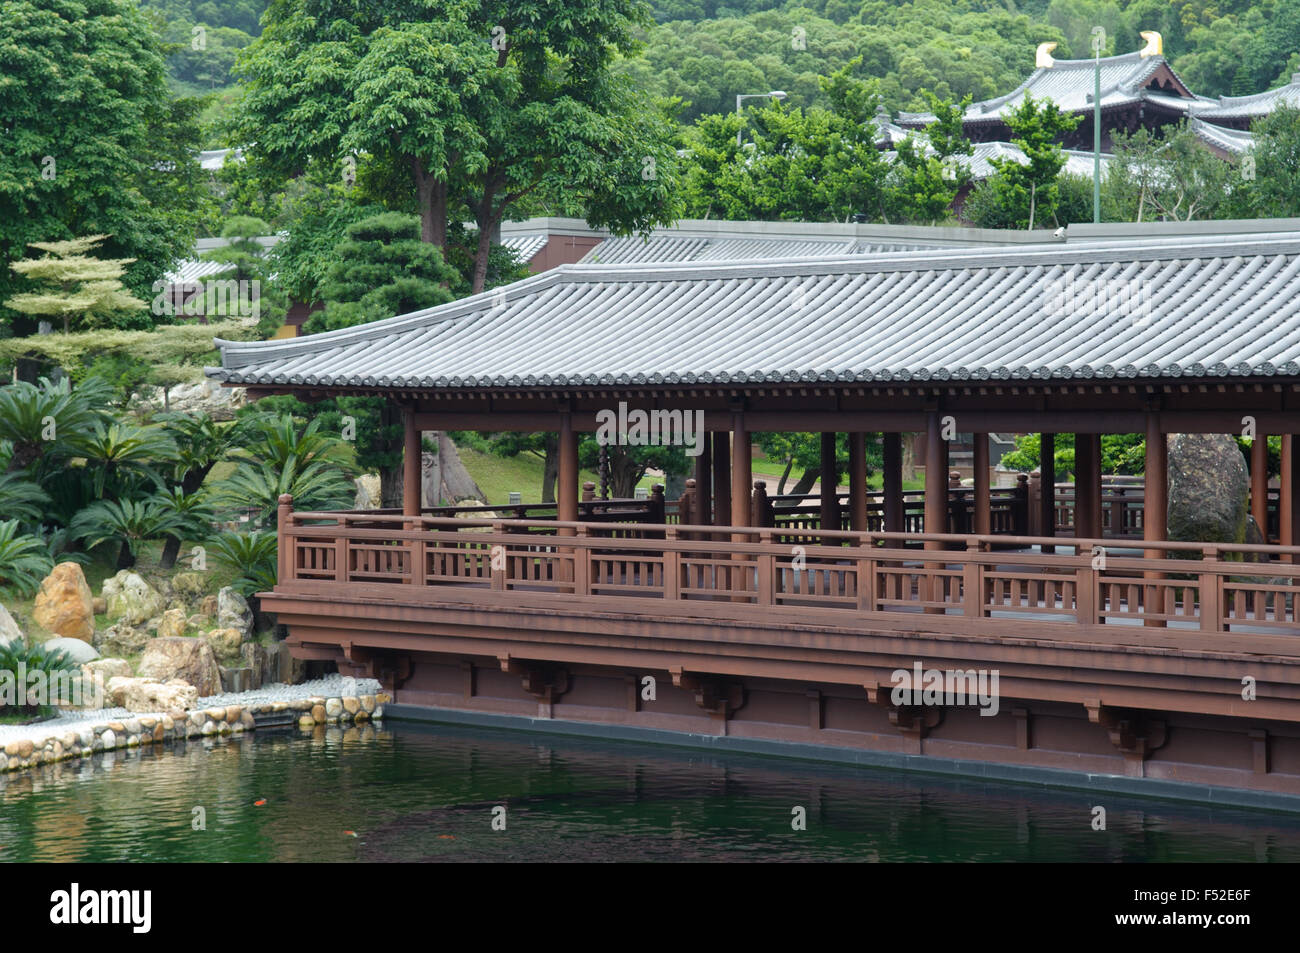 Song Cha Zie building overlooking blue pond, in Nan Lin Garden, Kowloon, Hong Kong - Stock Image